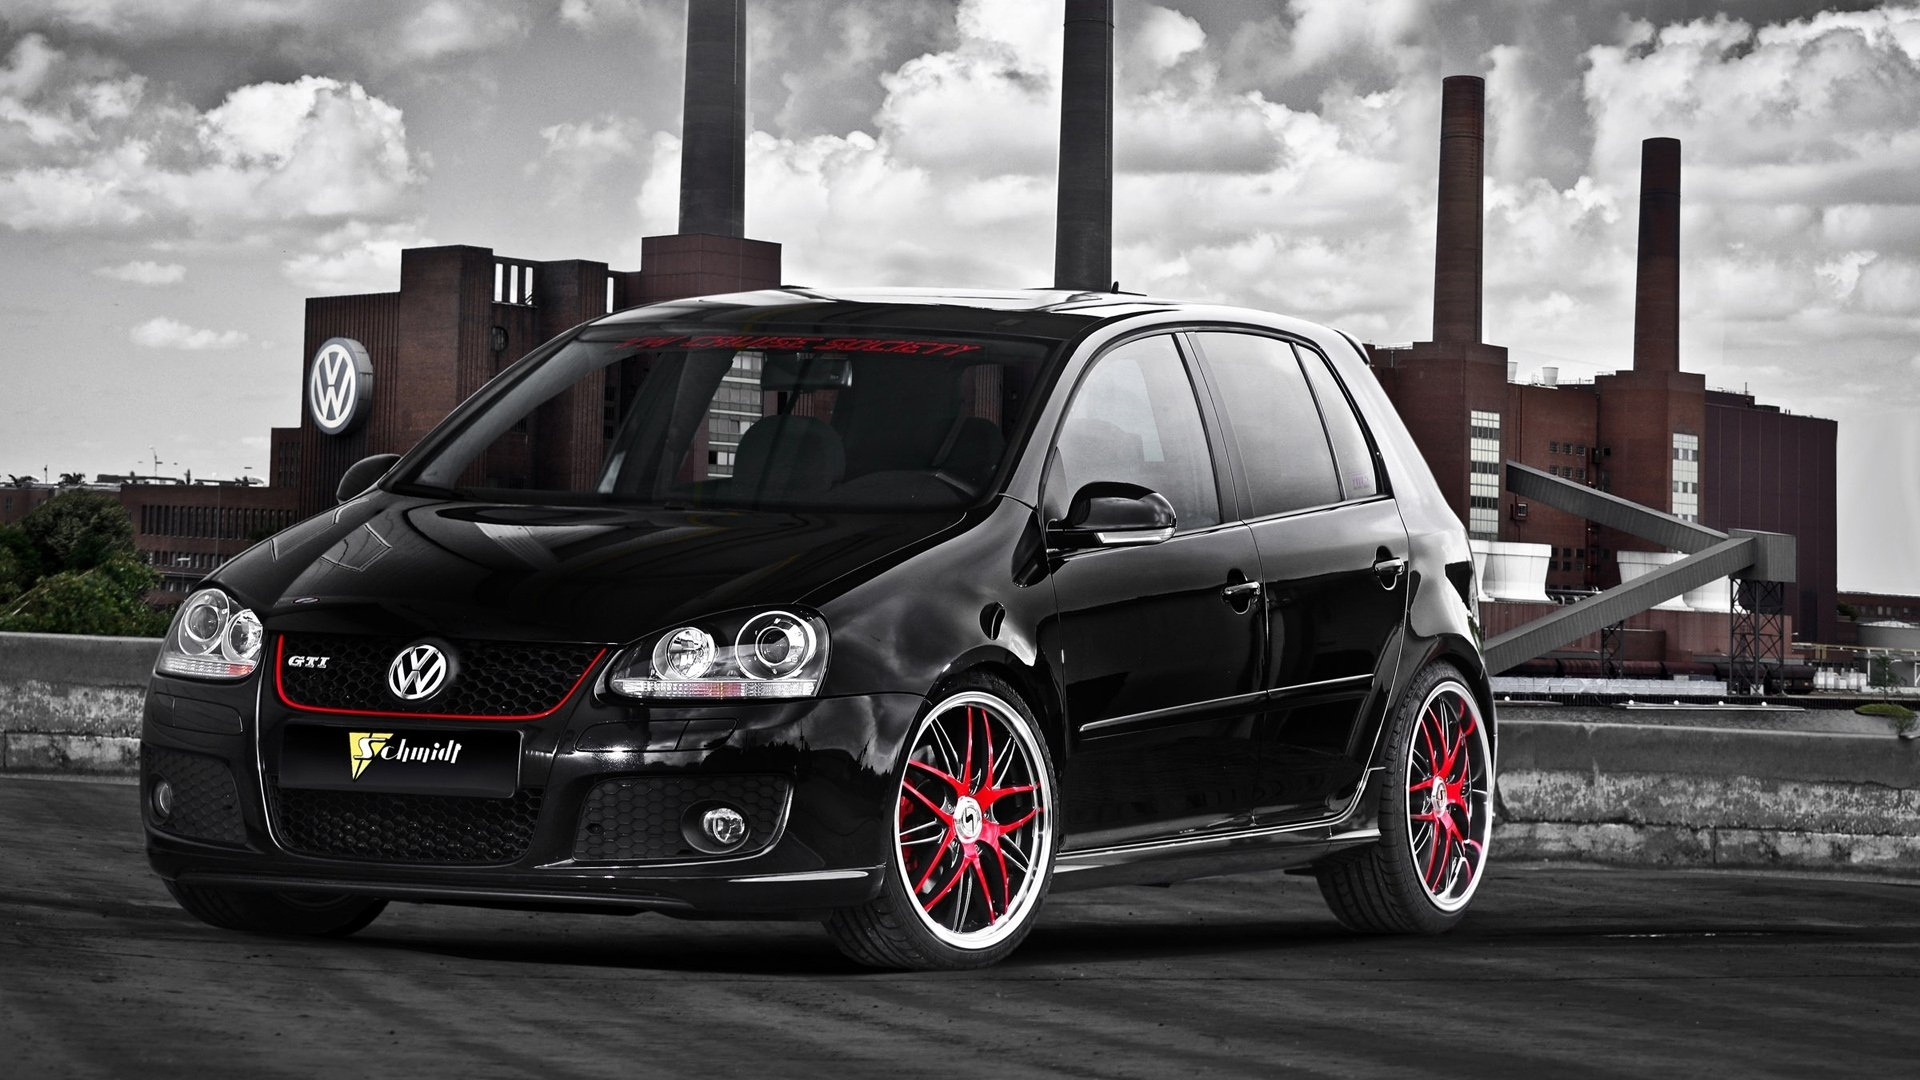 volkswagen golf gti hd background